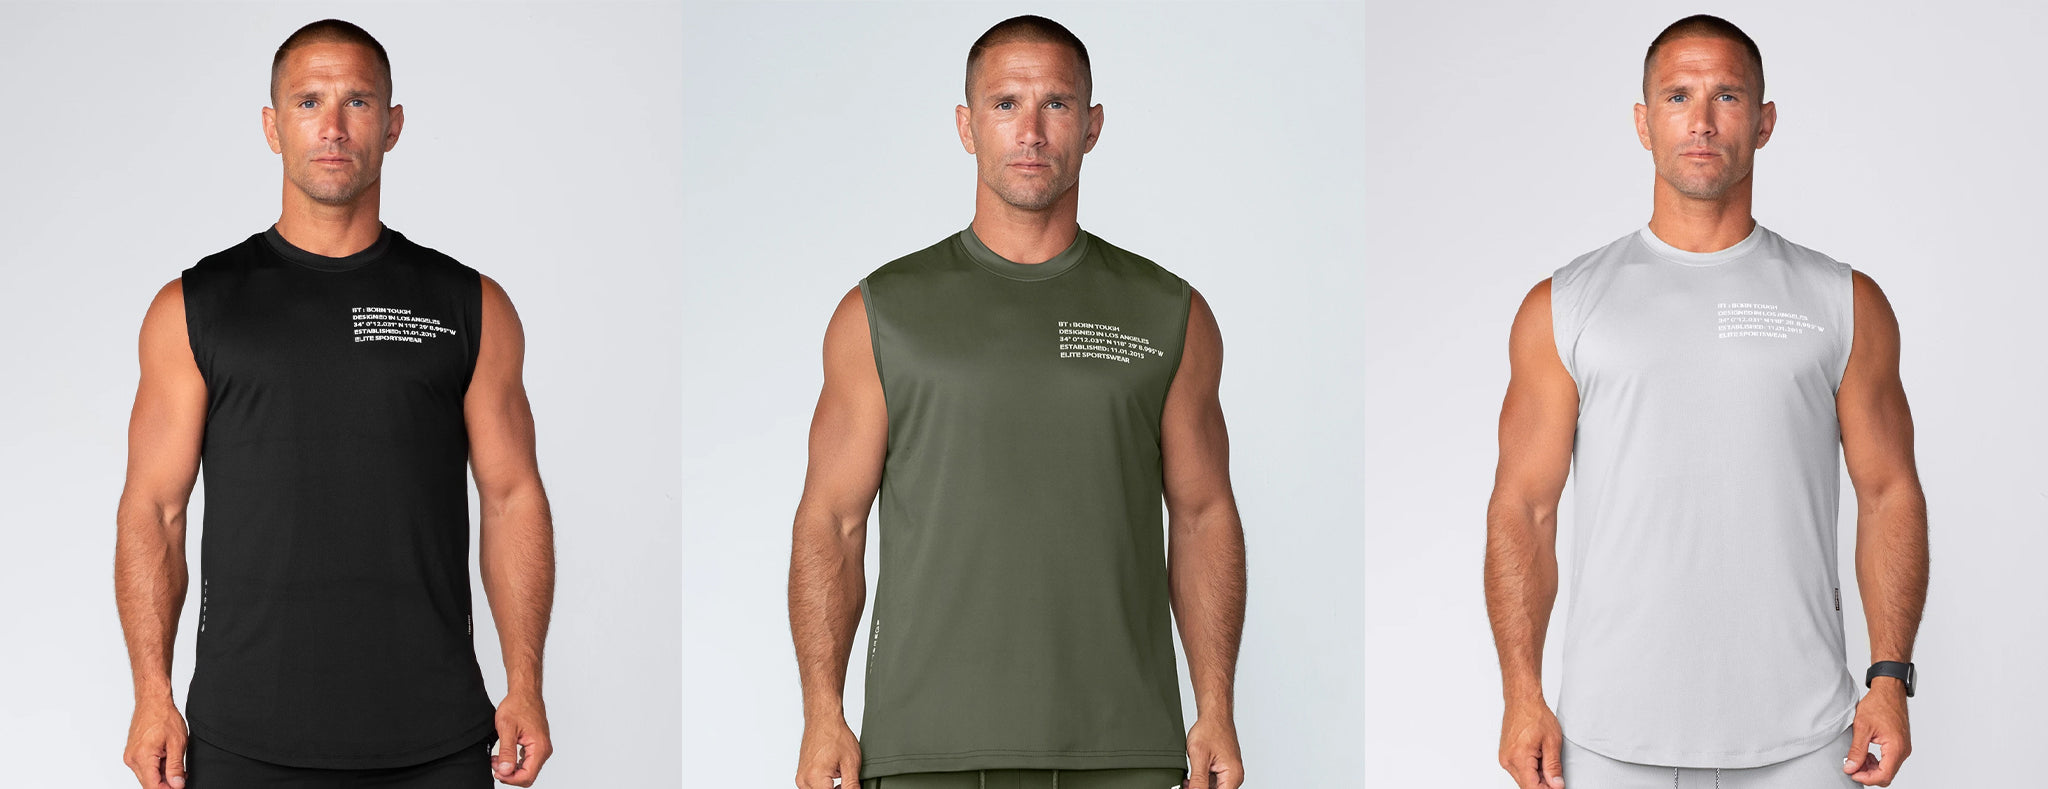 Born Tough Momentum Sleeveless Fitted Tee Shirt For Men